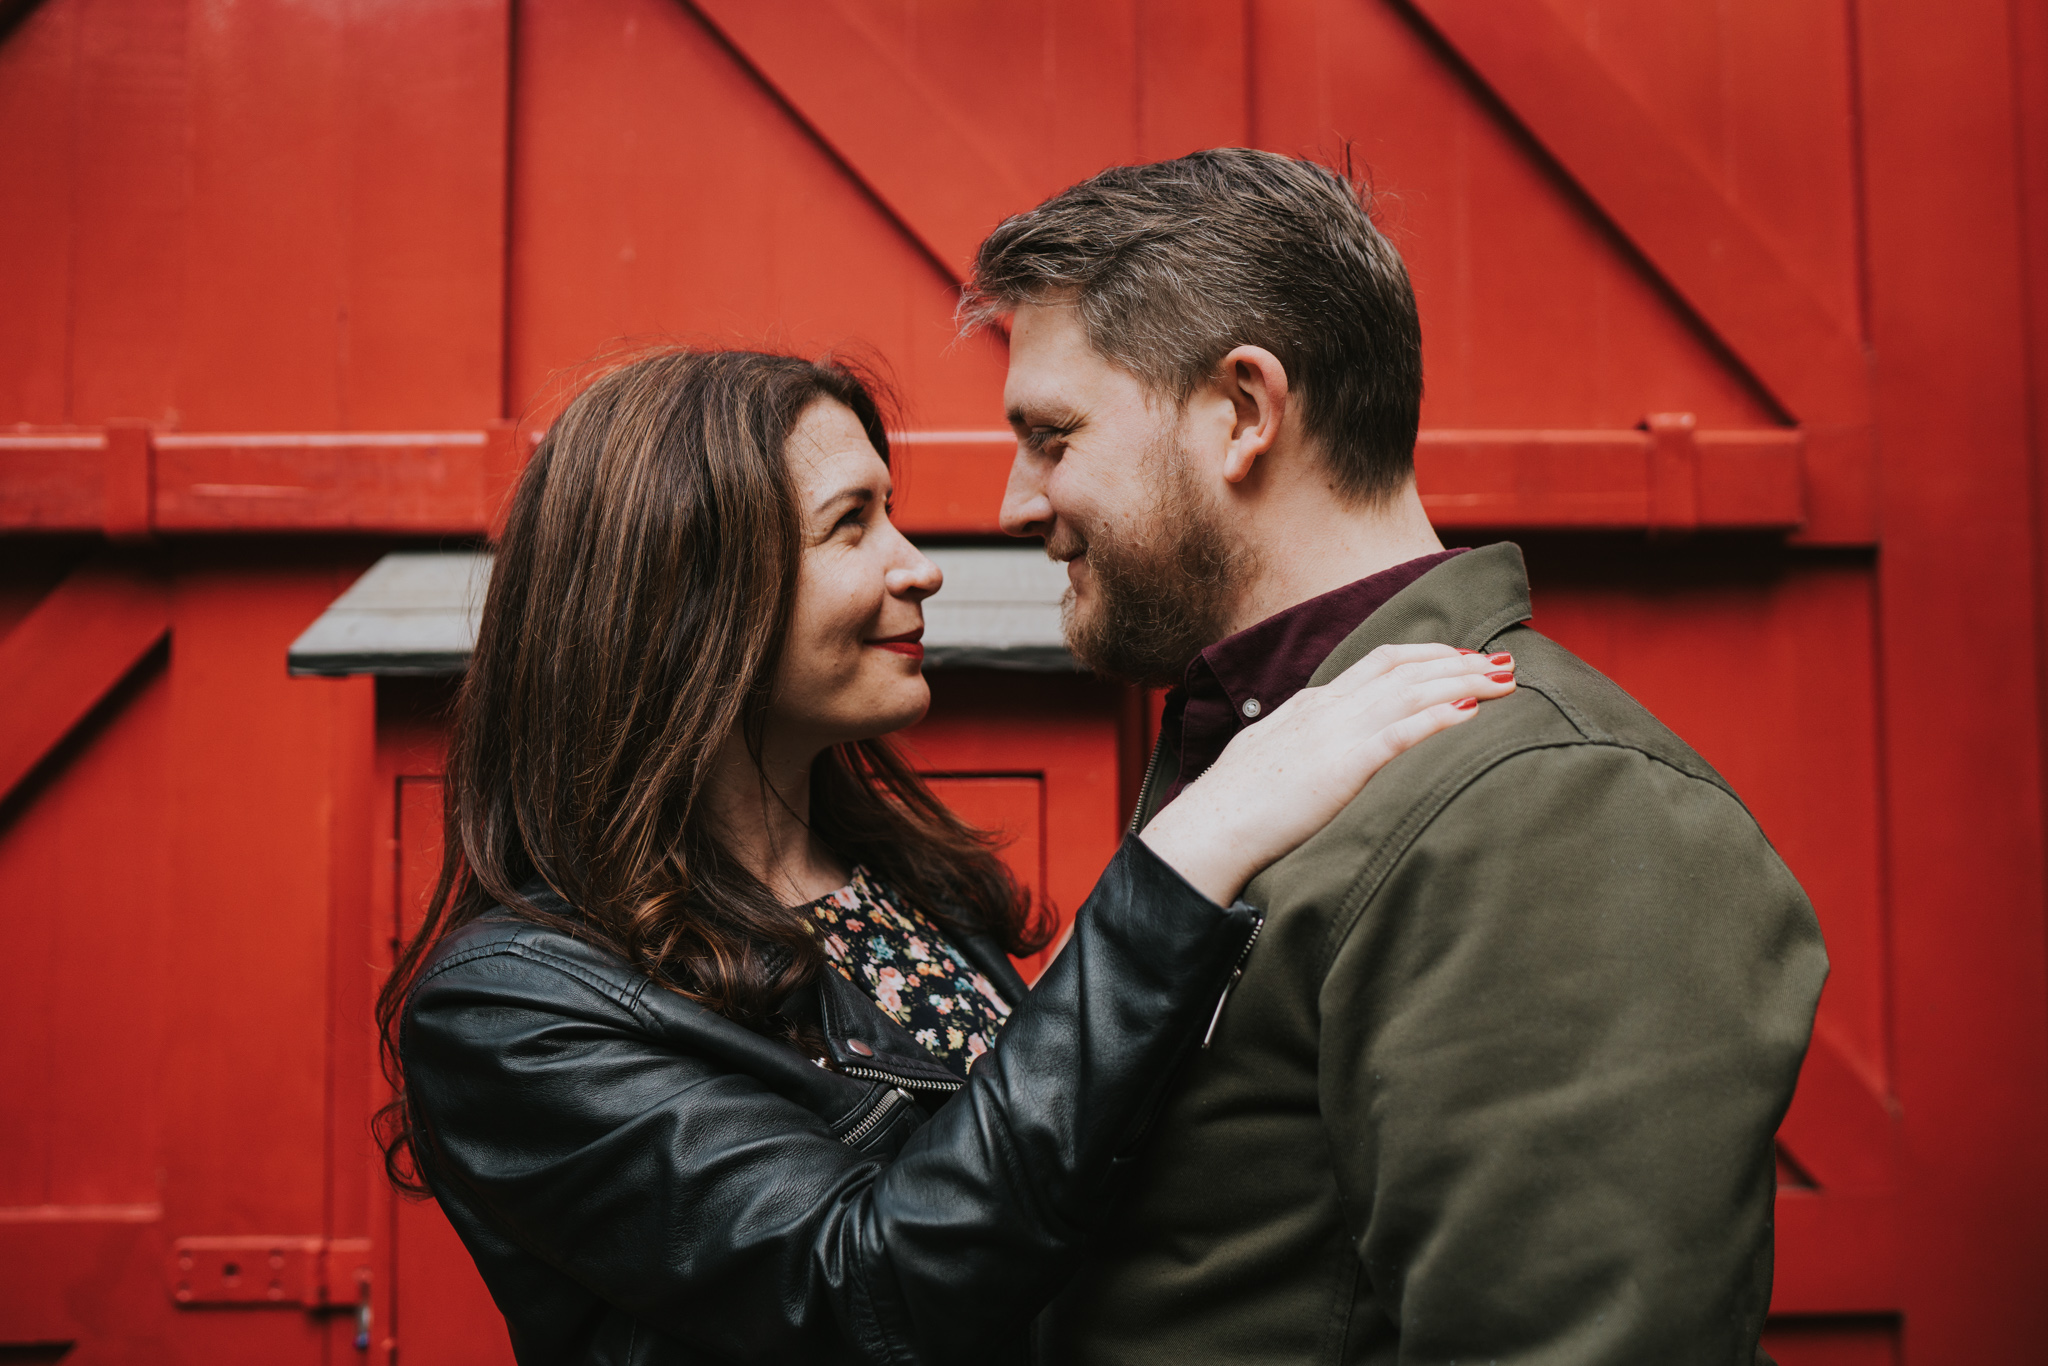 natalie-john-urban-london-engagement-grace-elizabeth-colchester-essex-alternative-wedding-photographer-essex-suffolk-norfolk-devon (55 of 66).jpg